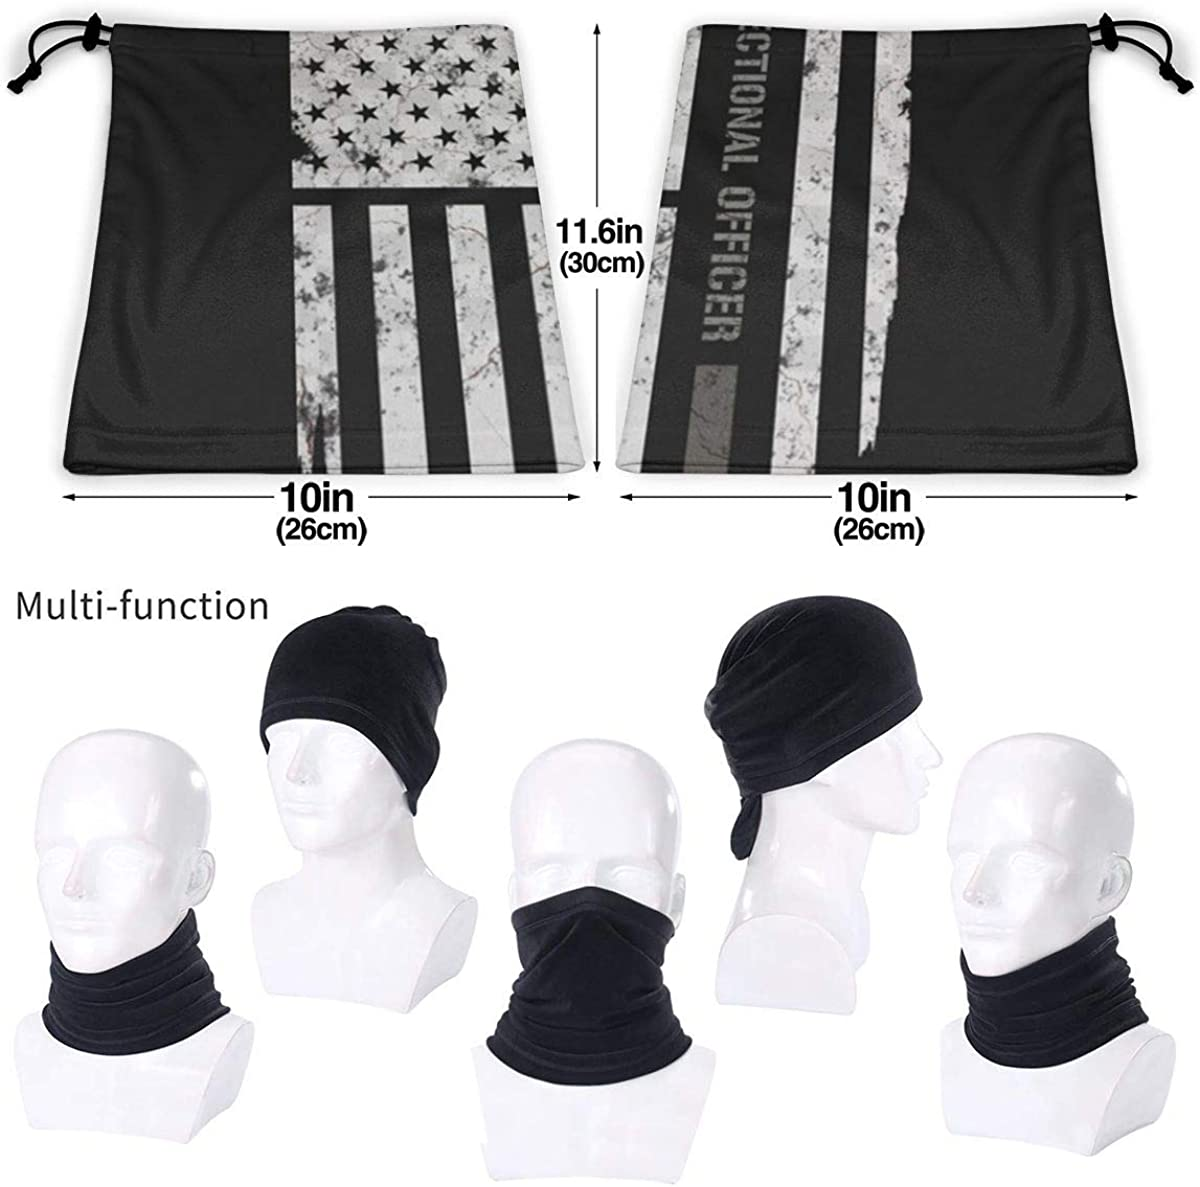 Speed FQ Thin Silver Line Correctional Officer Microfiber Neck Warmer Unisex Face Mask